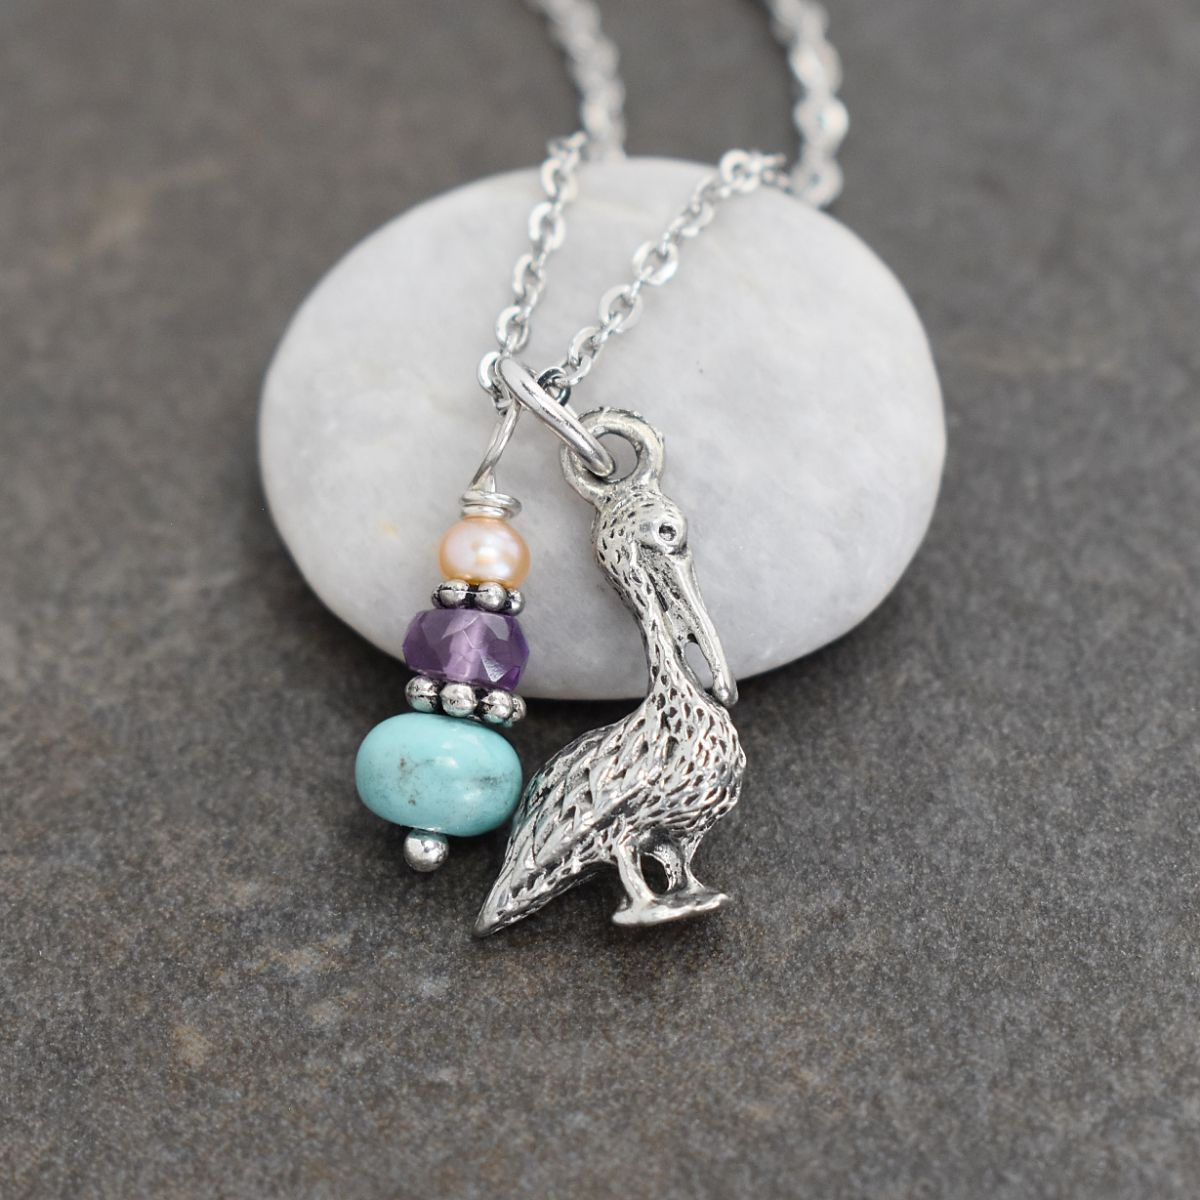 Pelican Necklace with Turquoise